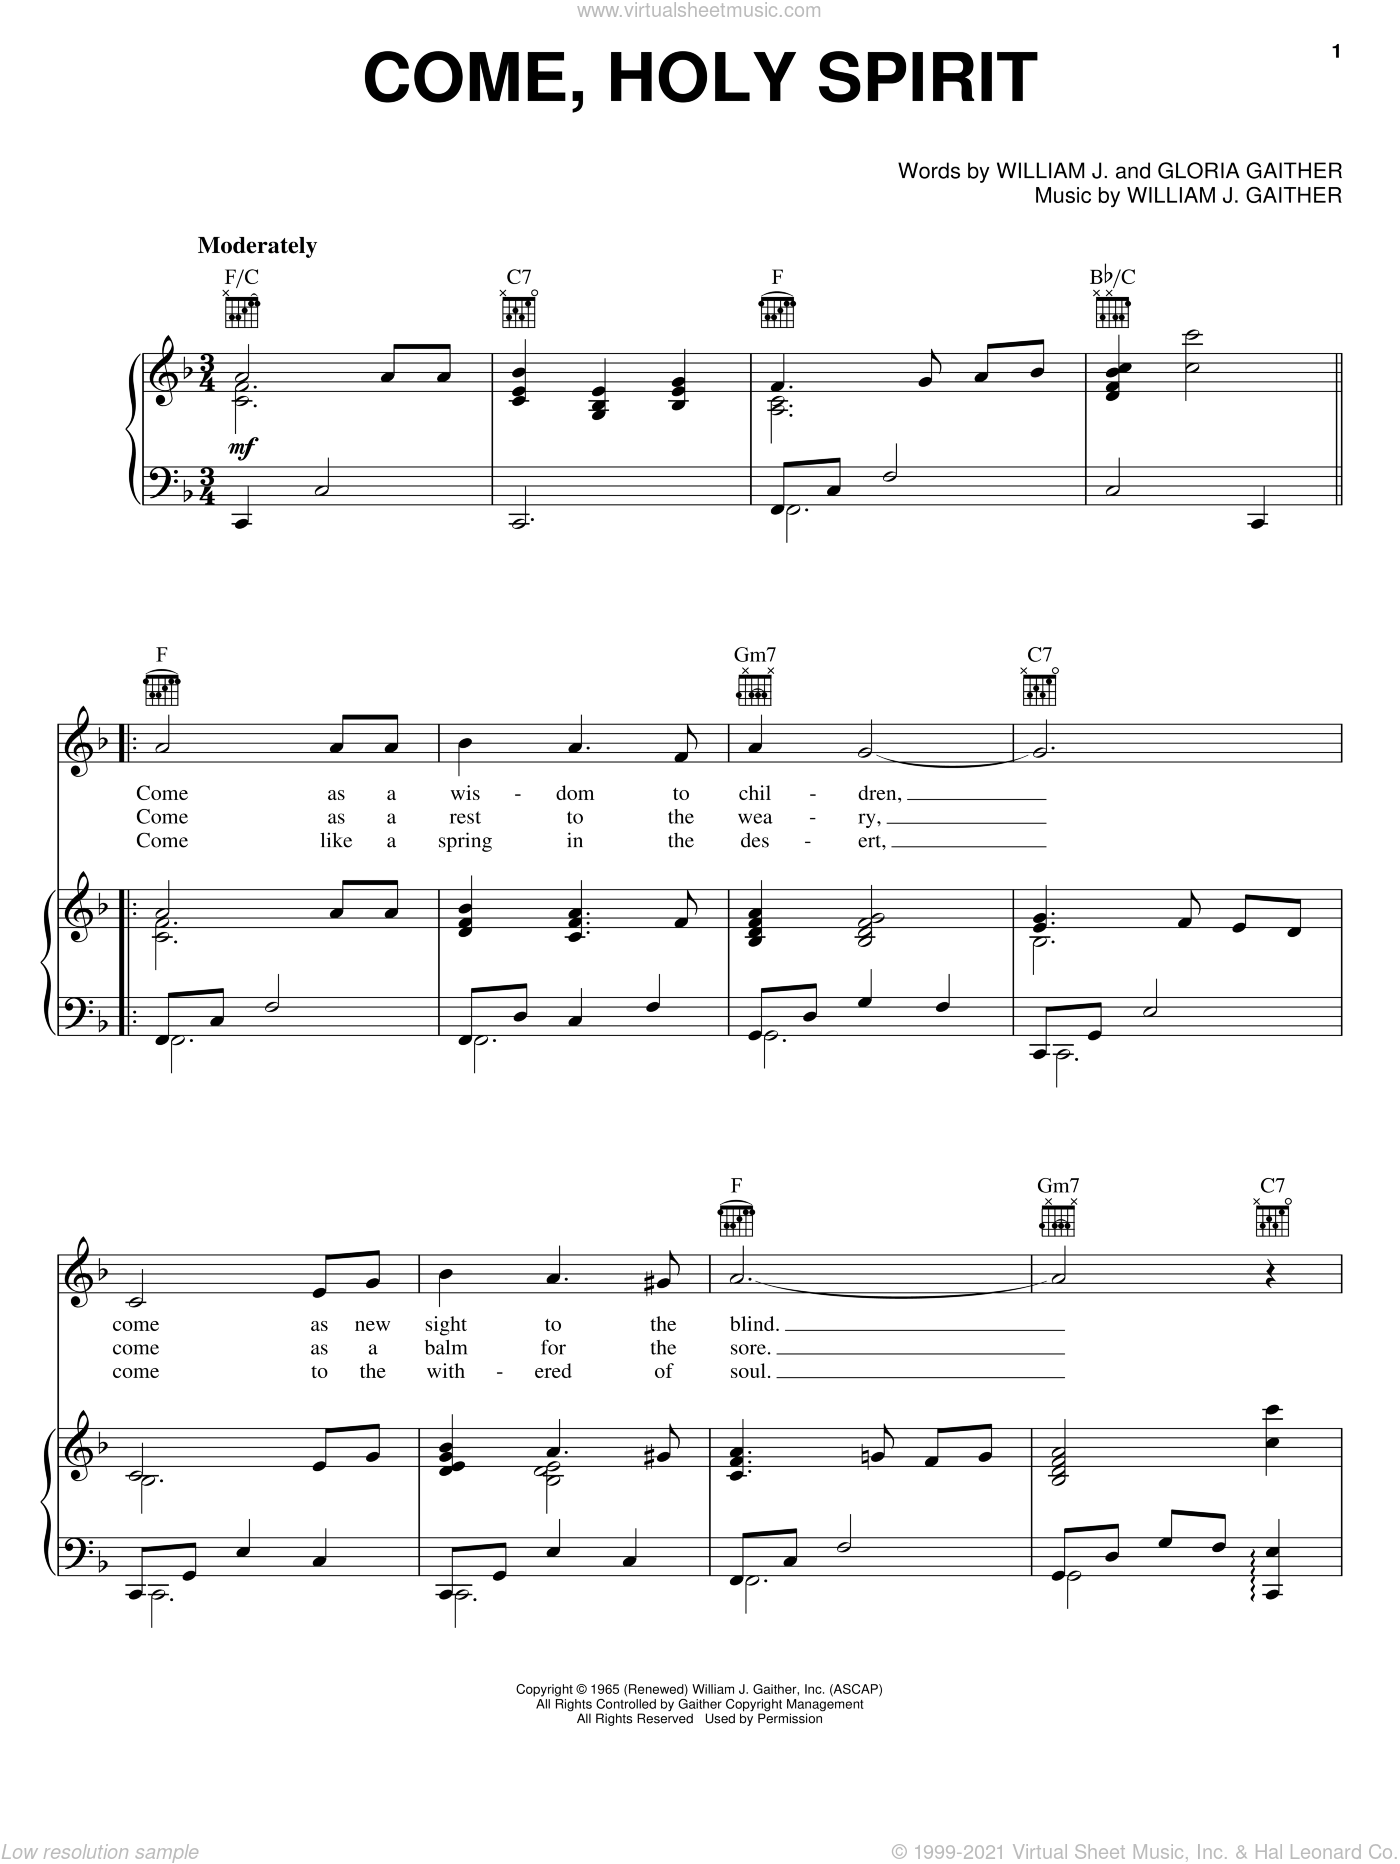 Come, Holy Spirit sheet music for voice, piano or guitar by Bill & Gloria Gaither, Bill Gaither, Gloria Gaither and William J. Gaither, intermediate skill level